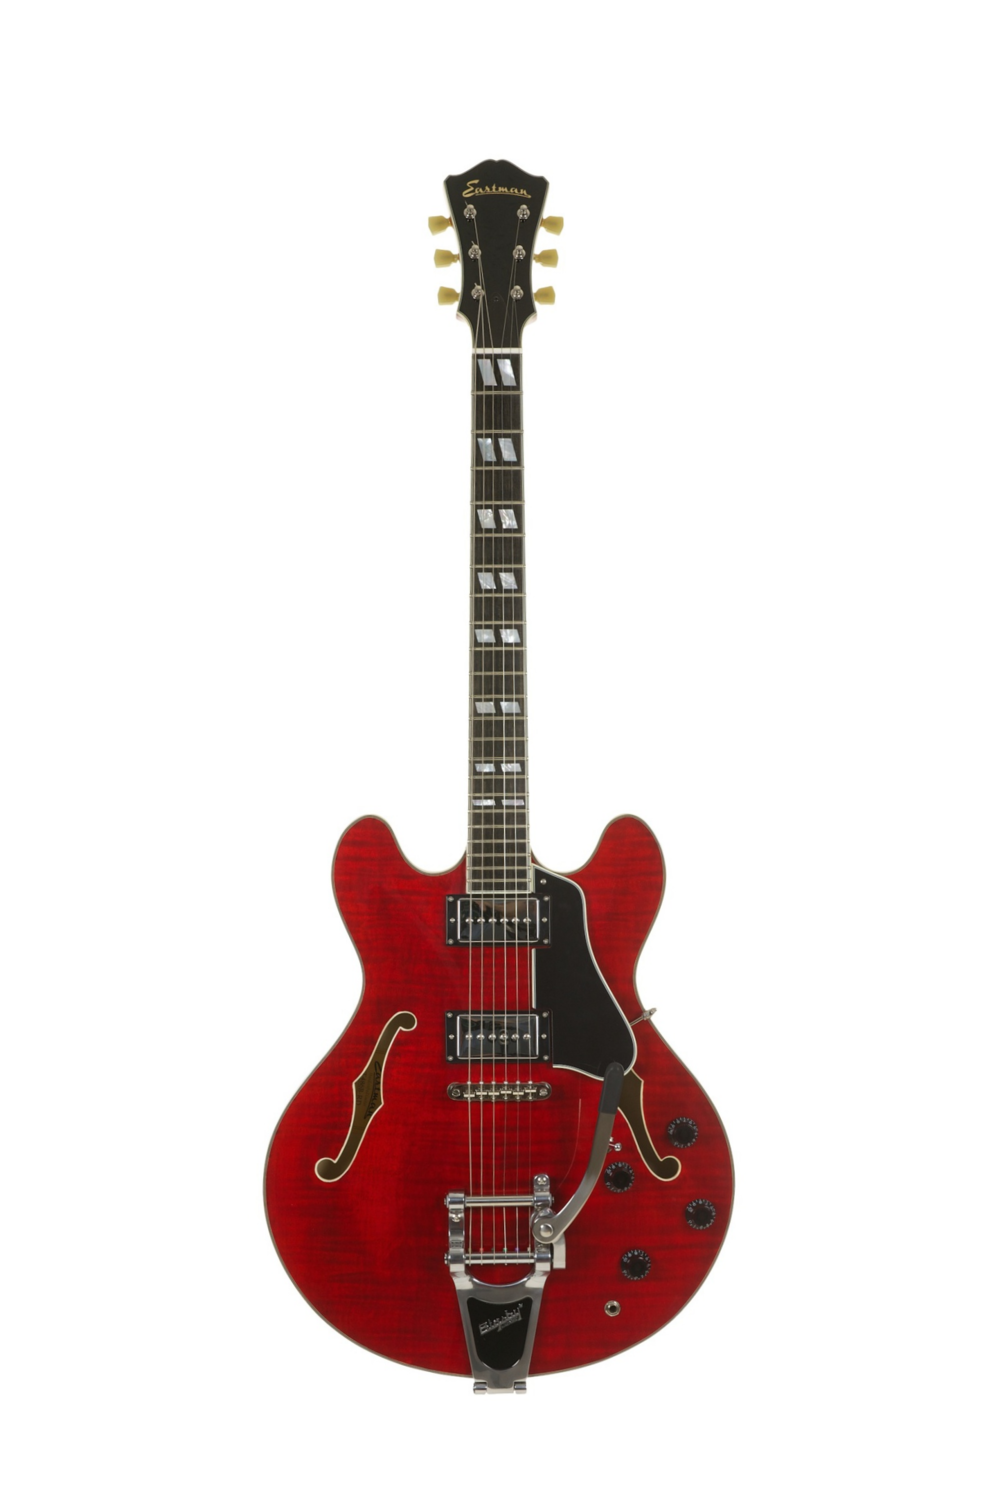 T486B-RD Suggested retail price: $1,450